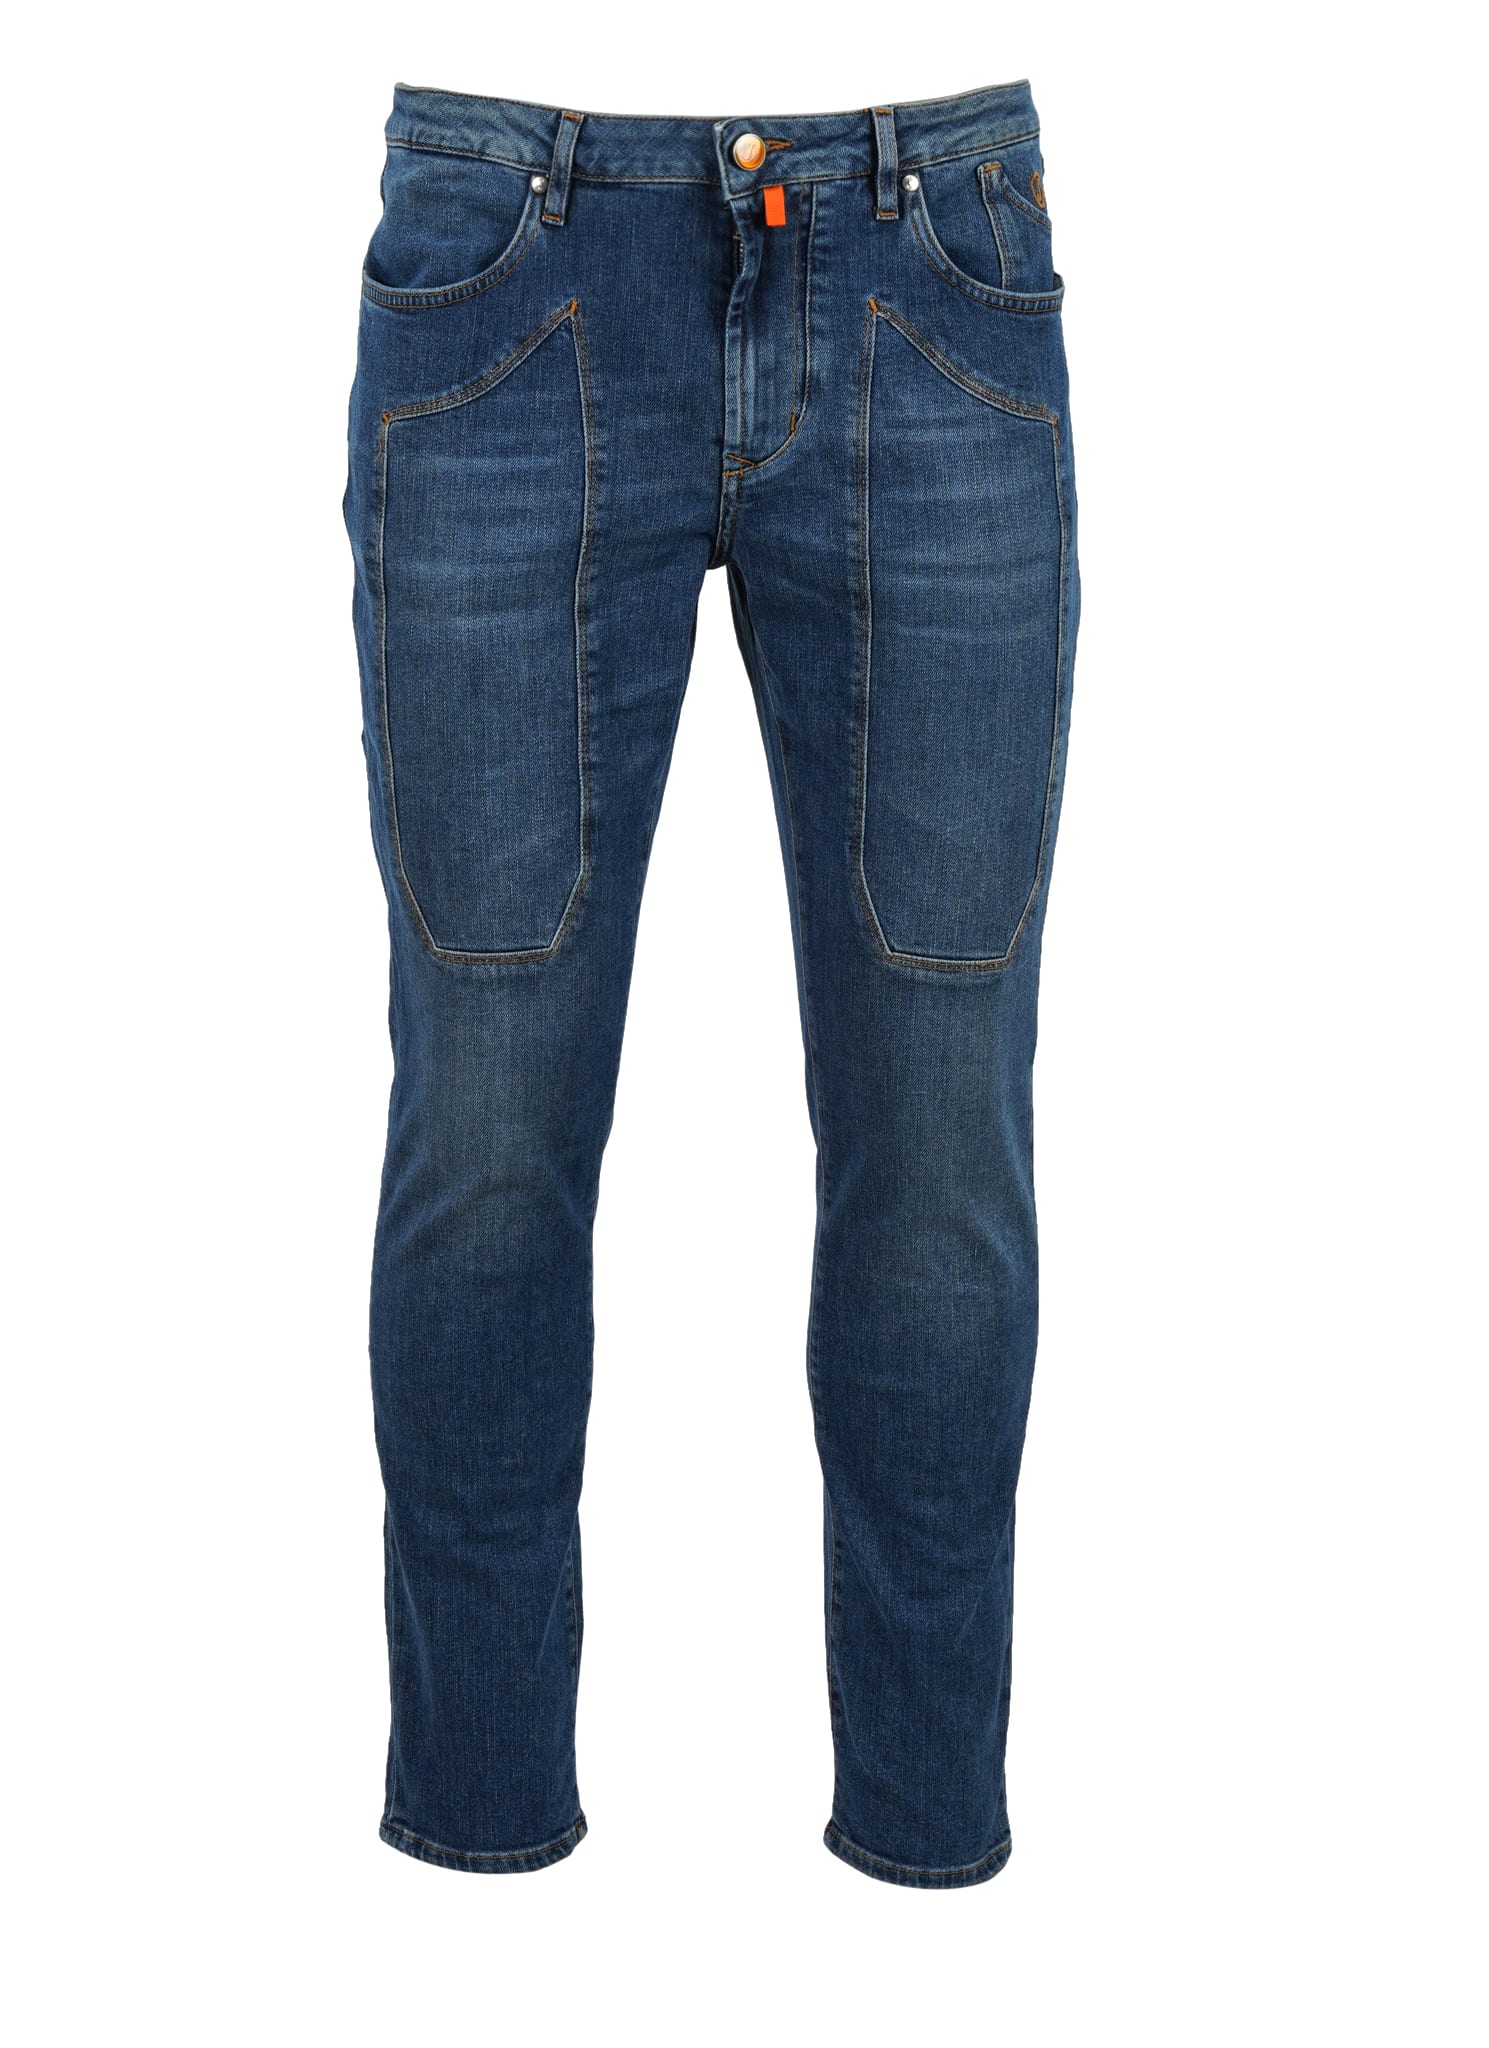 5 Tasche Patch Jeans